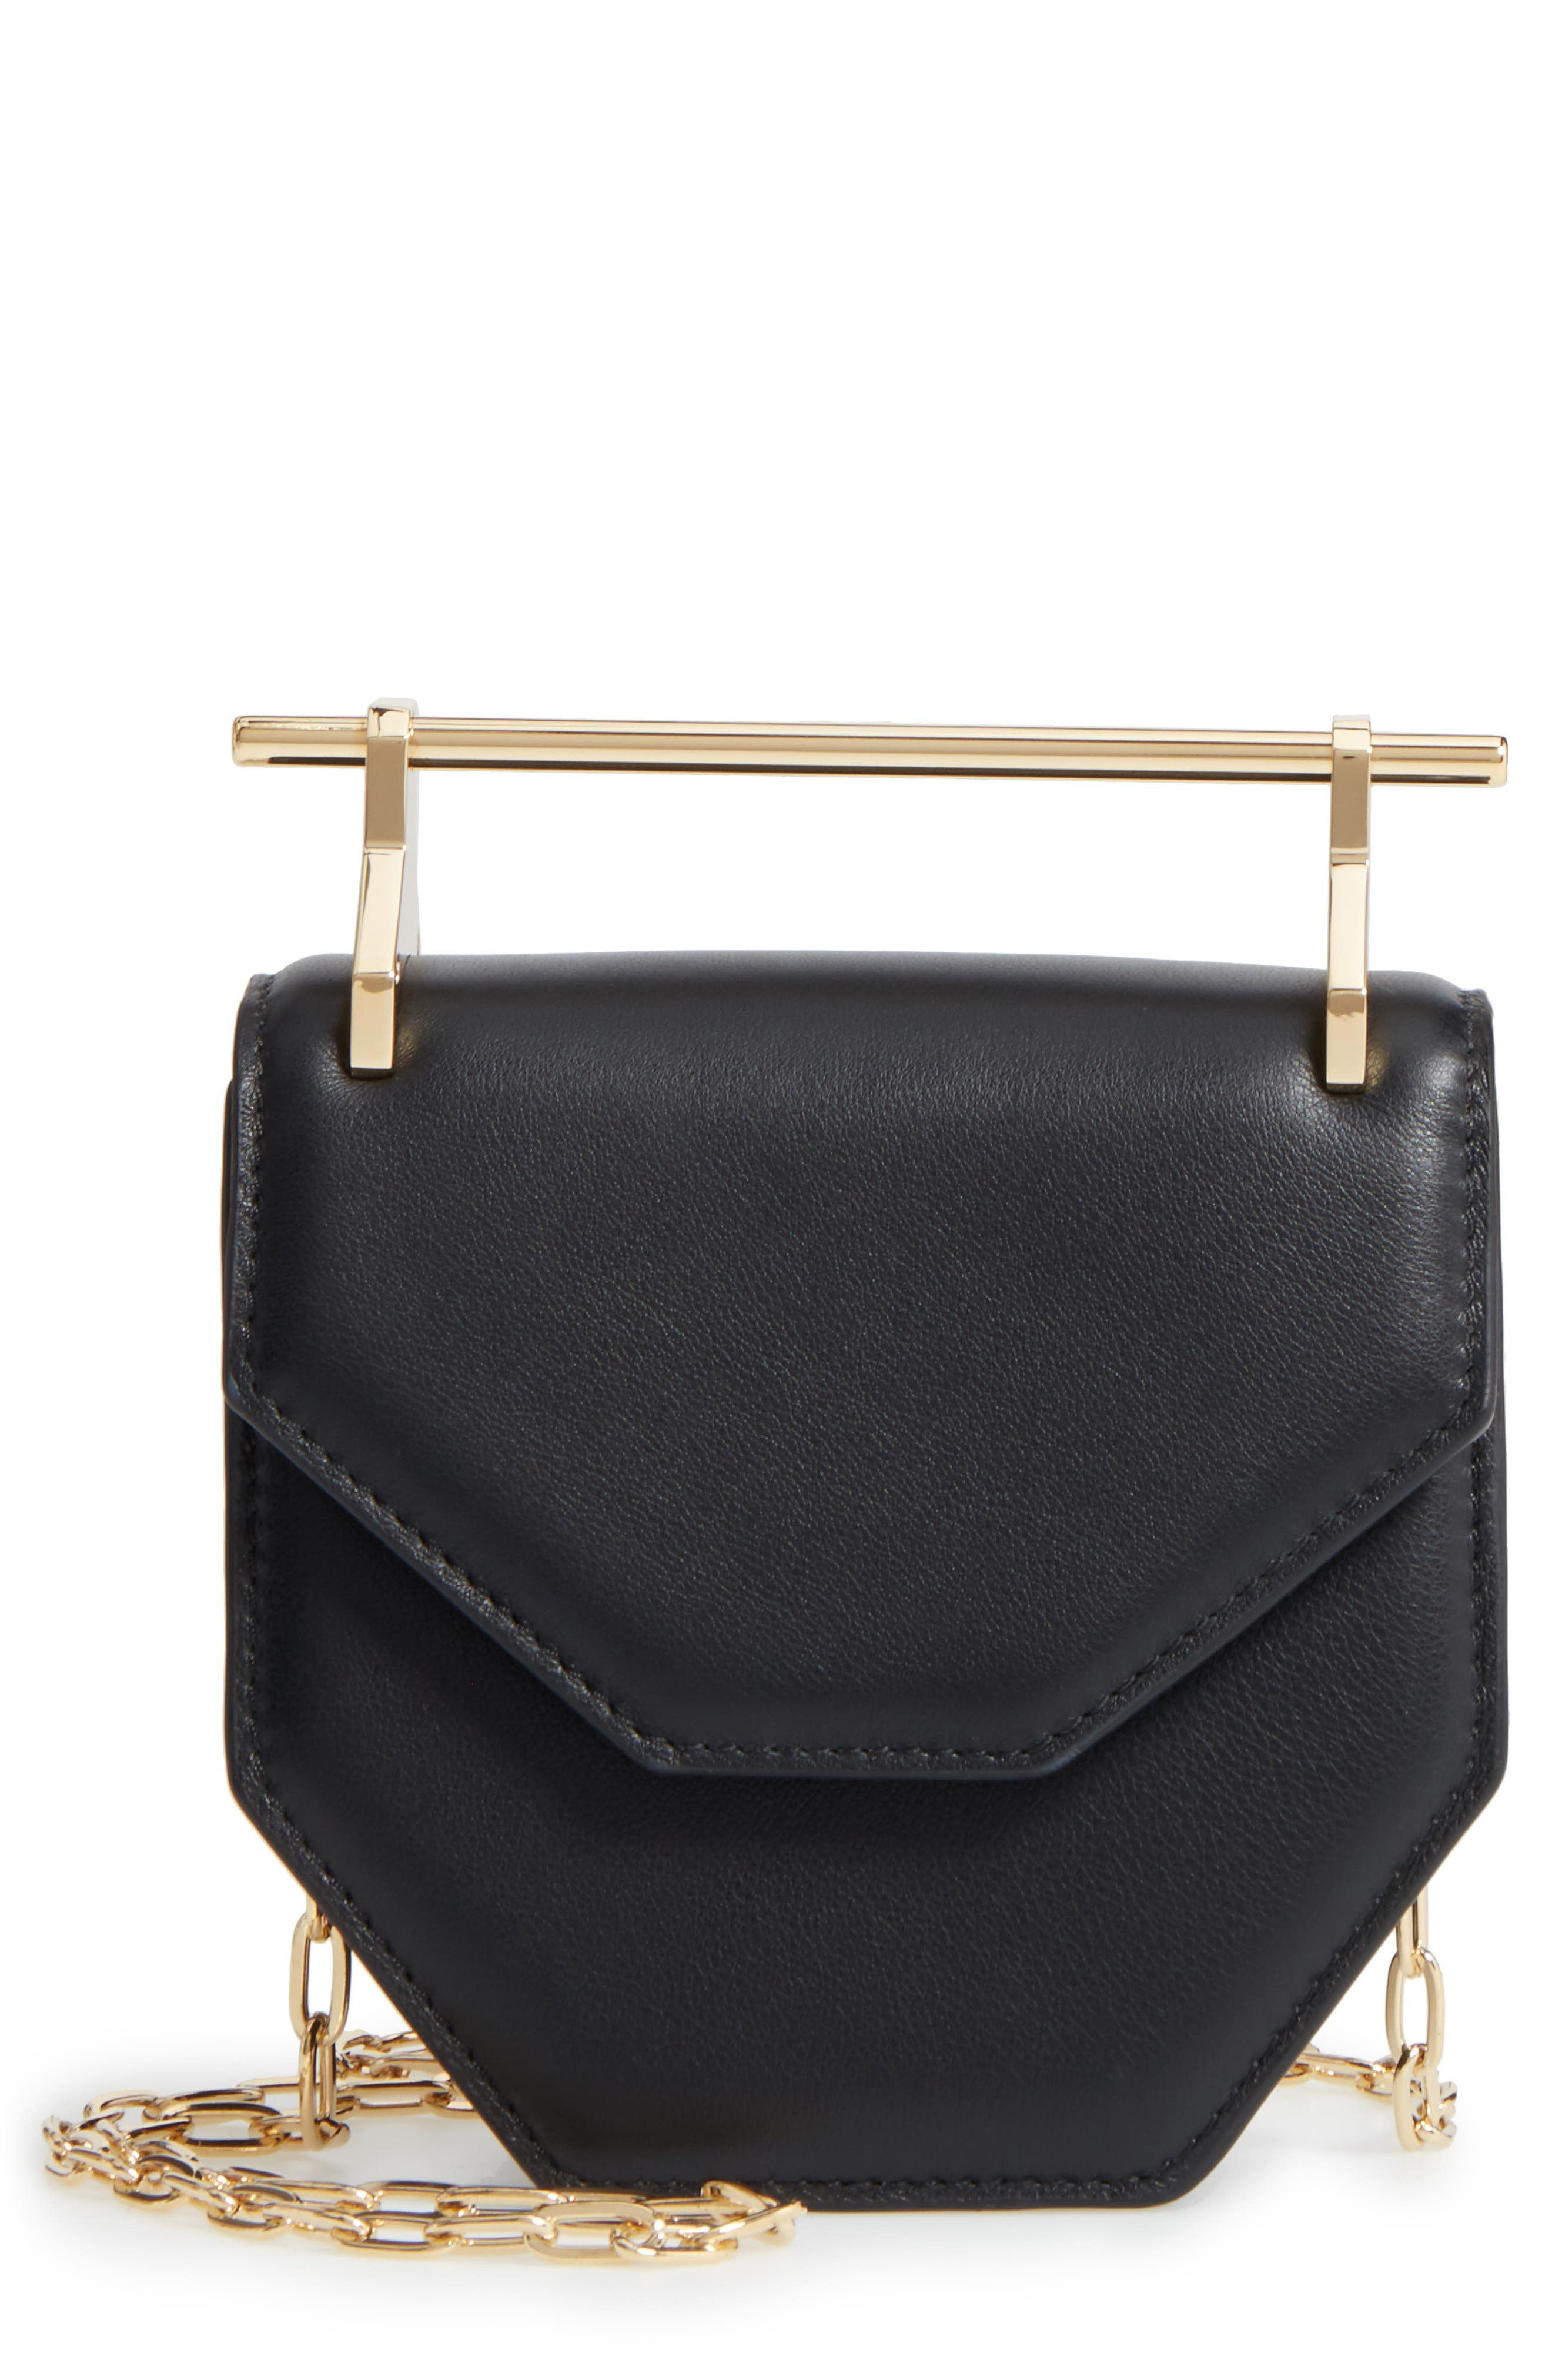 Mini Amor Fati Single Calfskin Leather Shoulder Bag,                         Main,                         color, Black/ Gold